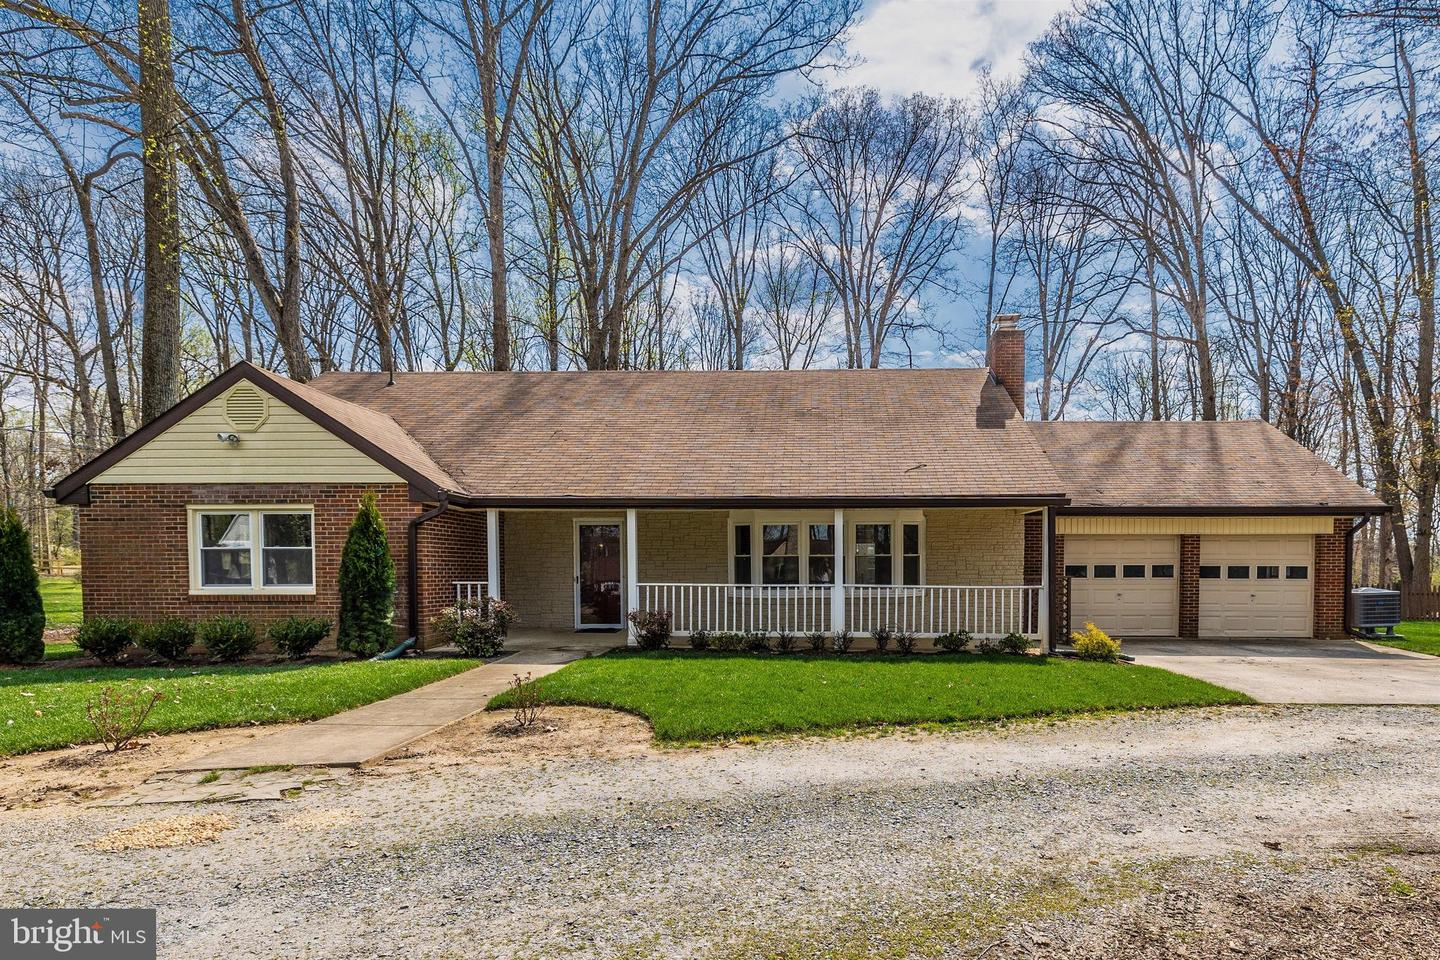 4400 PINETREE RD, ROCKVILLE, Maryland 20853, 4 Bedrooms Bedrooms, ,3 BathroomsBathrooms,Single Family,For Sale,4400 PINETREE RD,MDMC752284